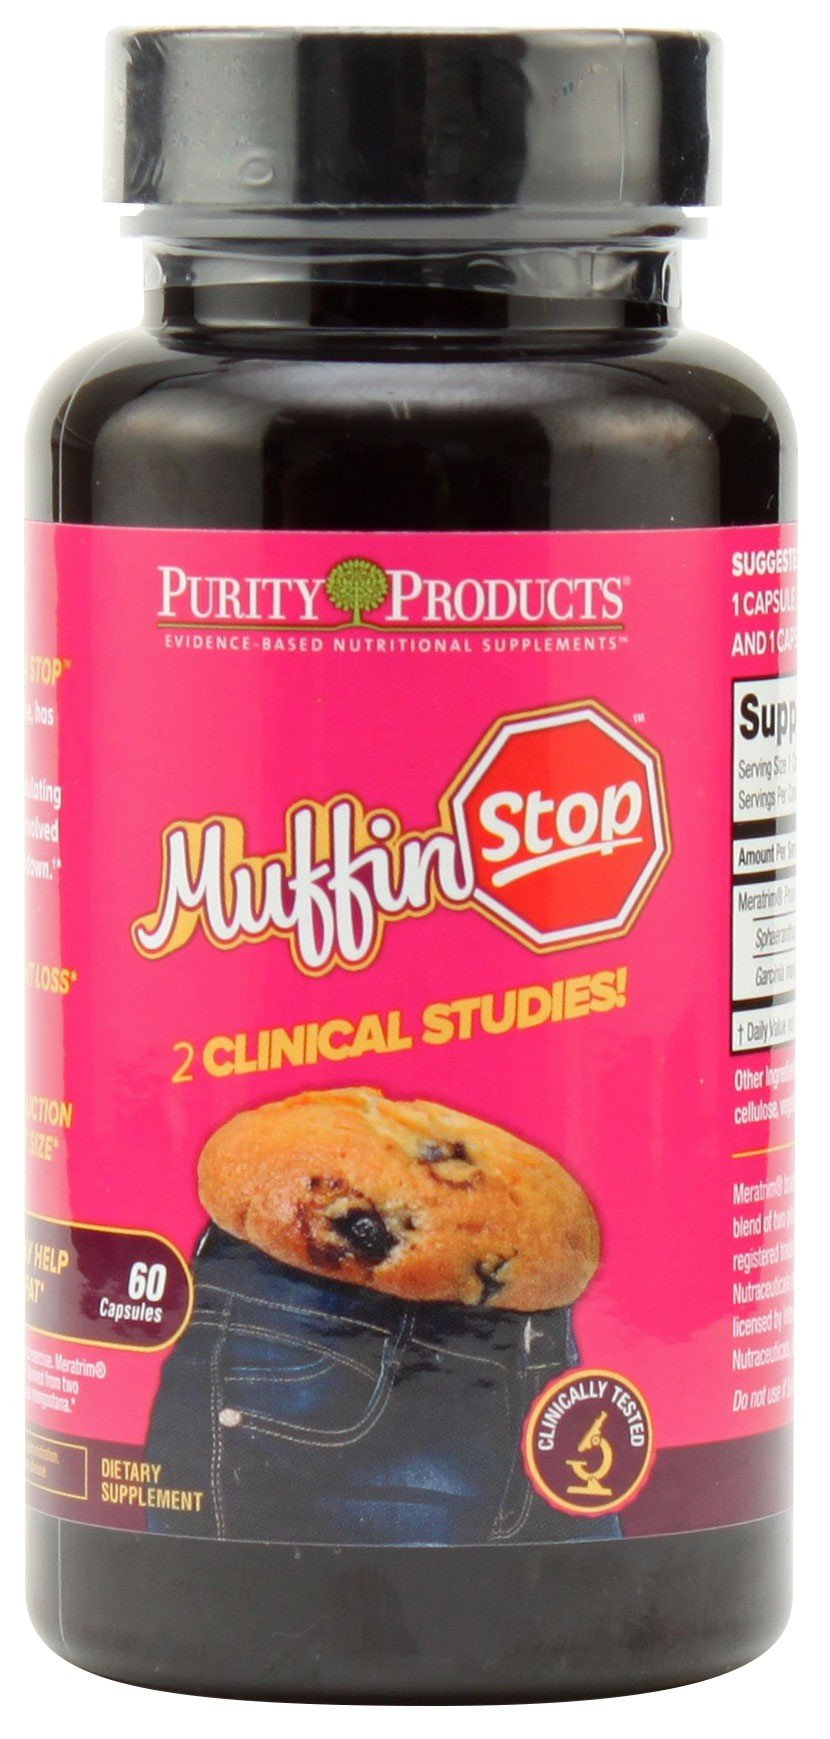 MuffinStop from Purity Products - Clinically Studied Hip and Waist Weight-Loss Supplement, Body Fat Burner, Garcinia - 1 Month Supply, 60 Capsules by Purity Products